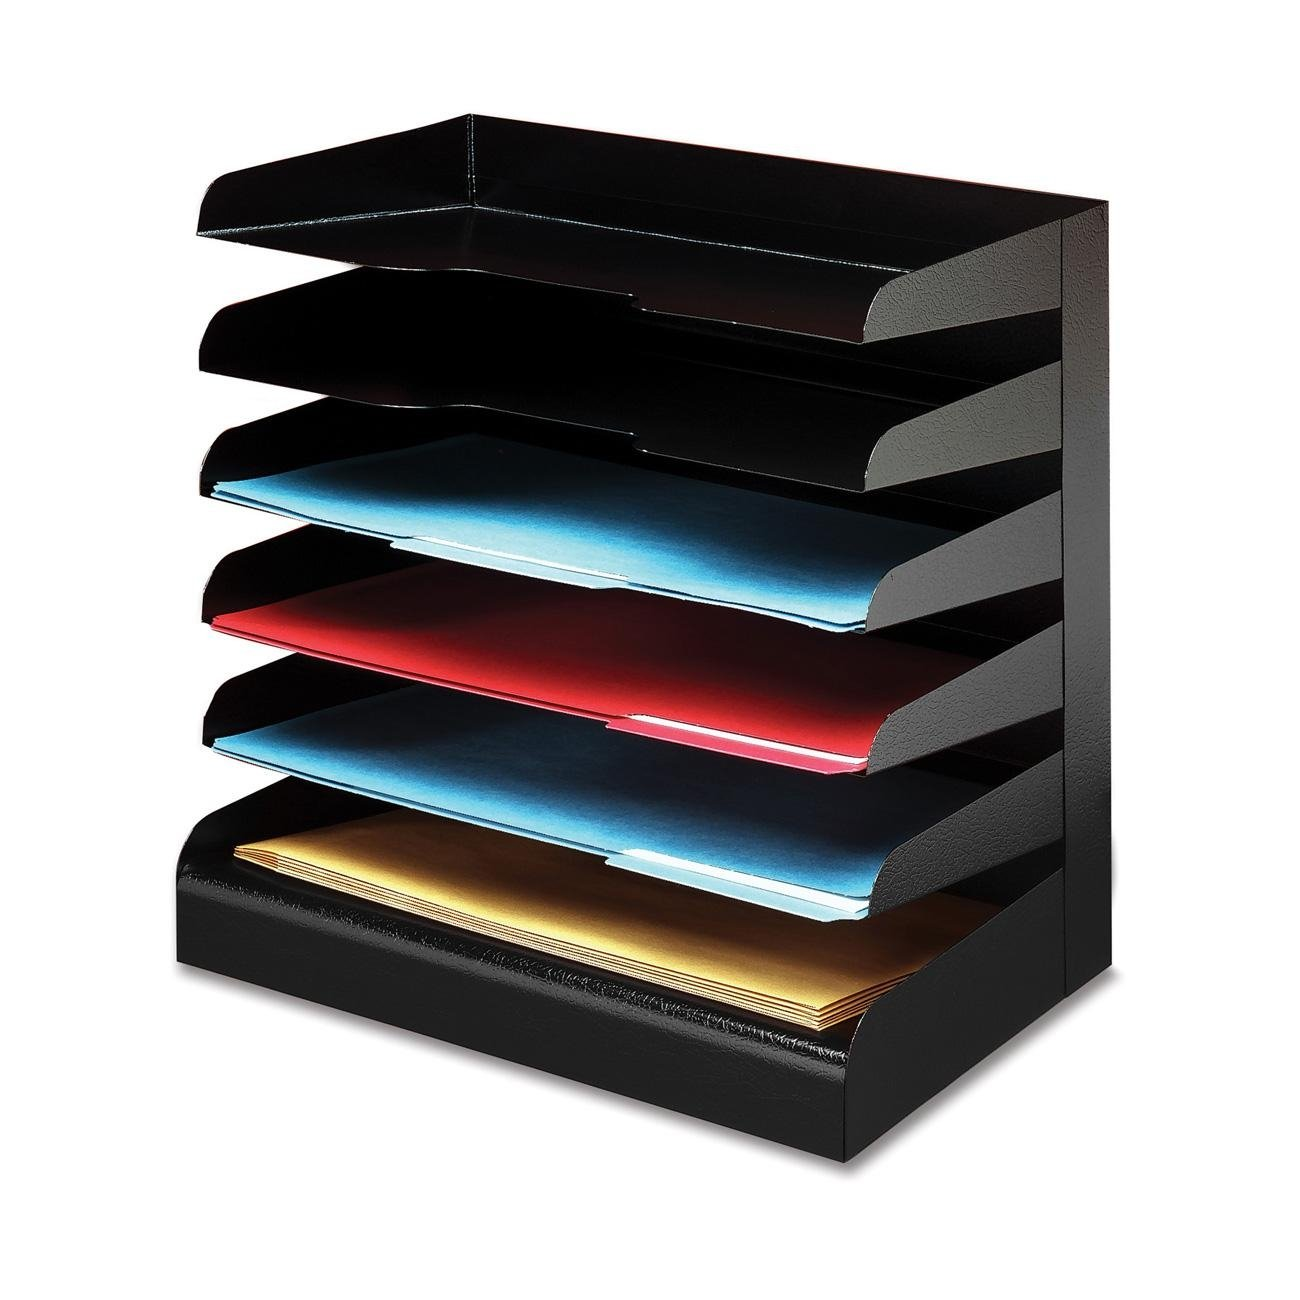 Buddy Products Classic 6 Tier Trays, Legal Size, Steel, 9.5 x 14.375 x 15 Inches, Black (0416-4) by Buddy Products